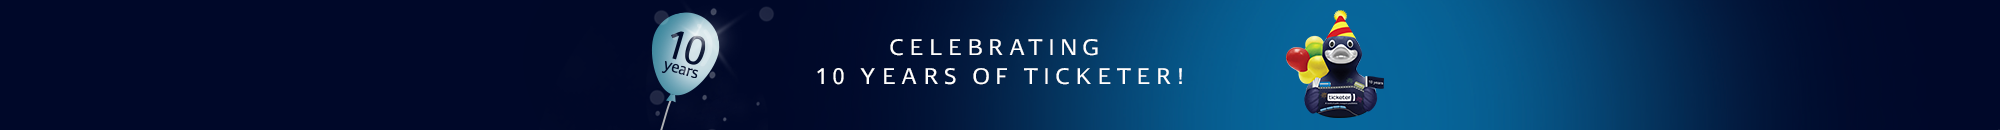 Celebrating 10 years of Ticketer!